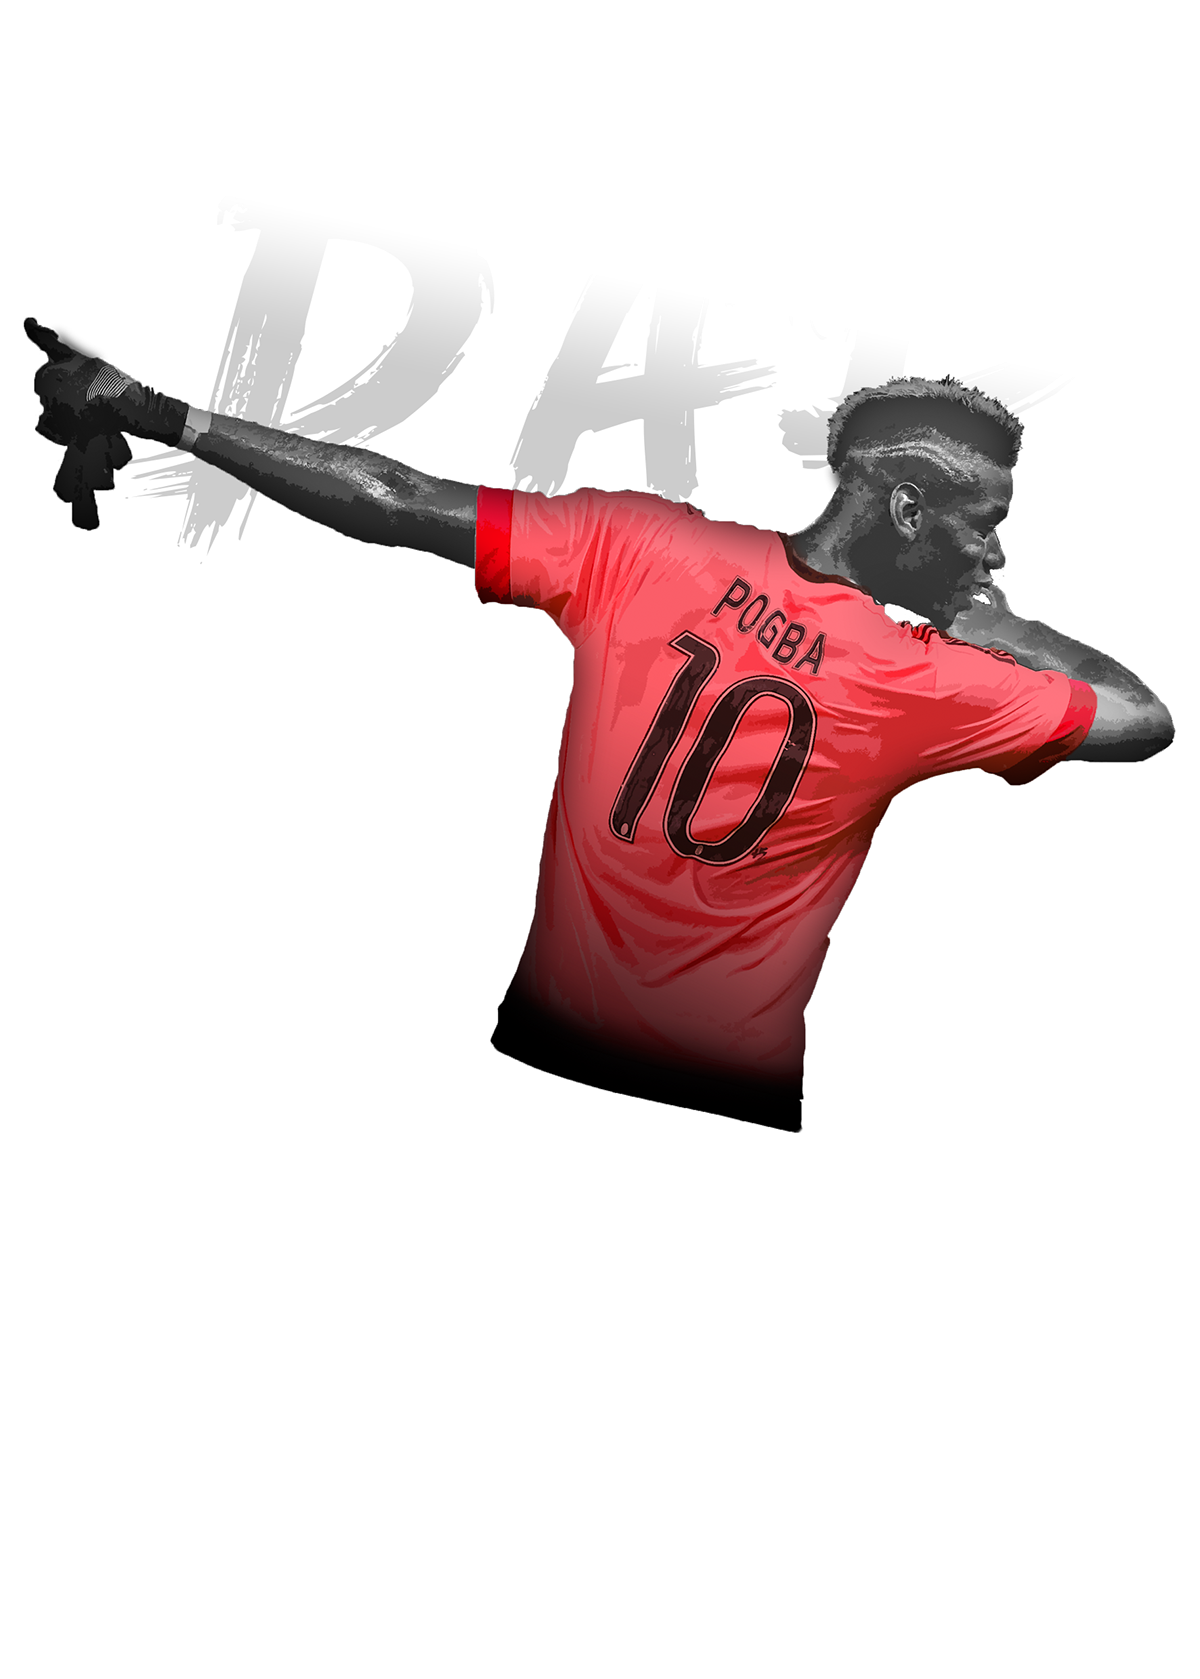 Pogba dab png. Paul on student show